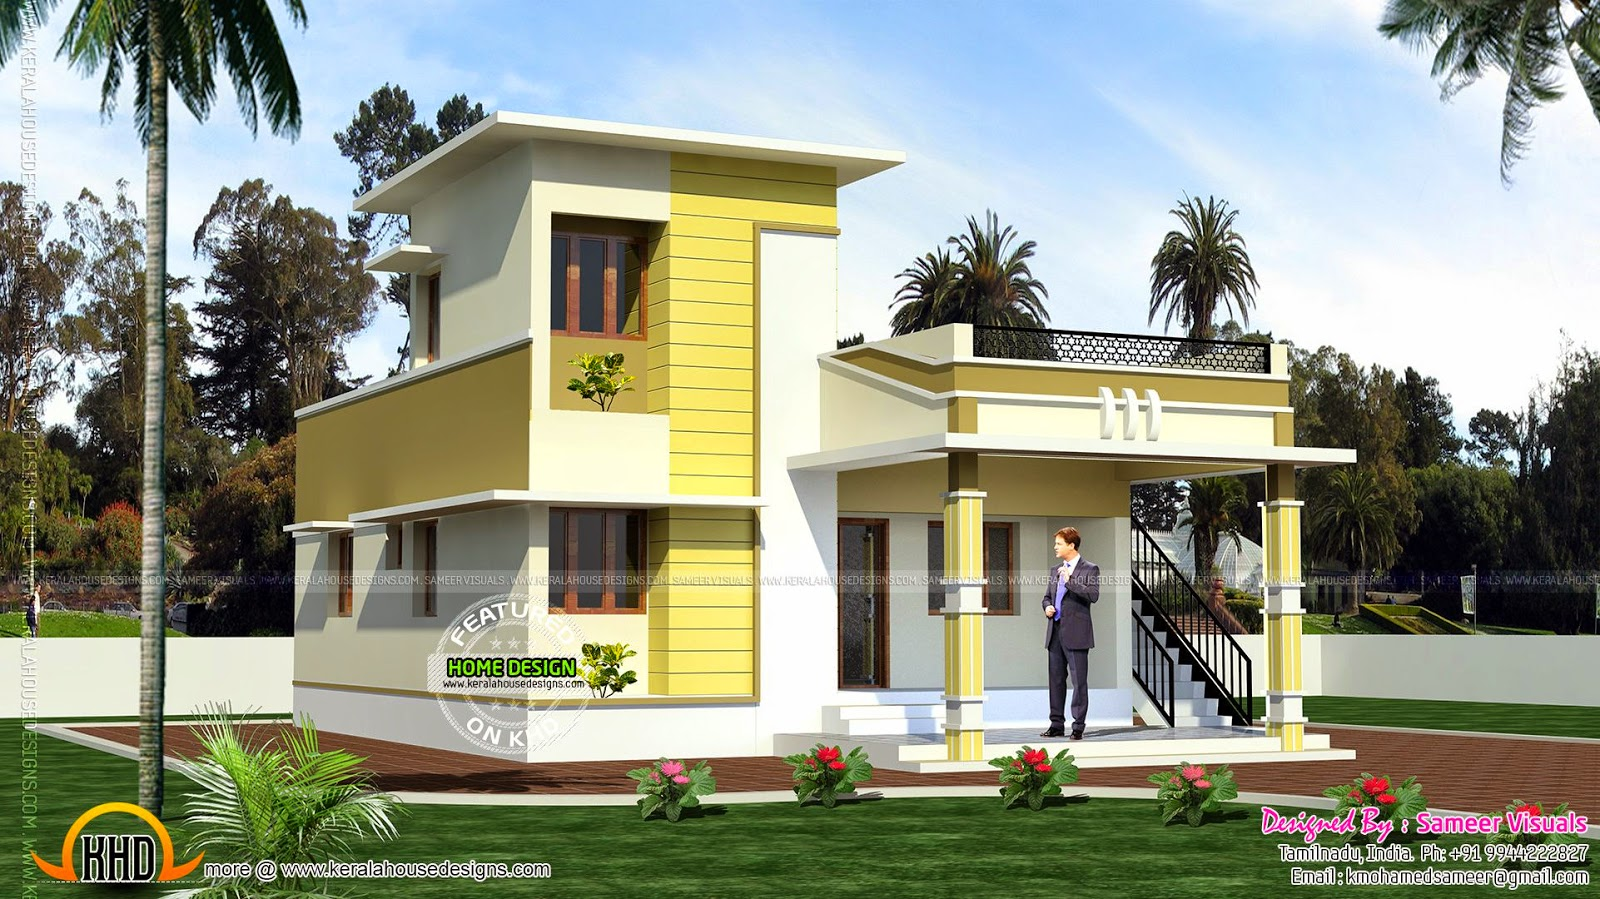 Tamilnadu style single floor home design thefloors co for Tamilnadu home design photos